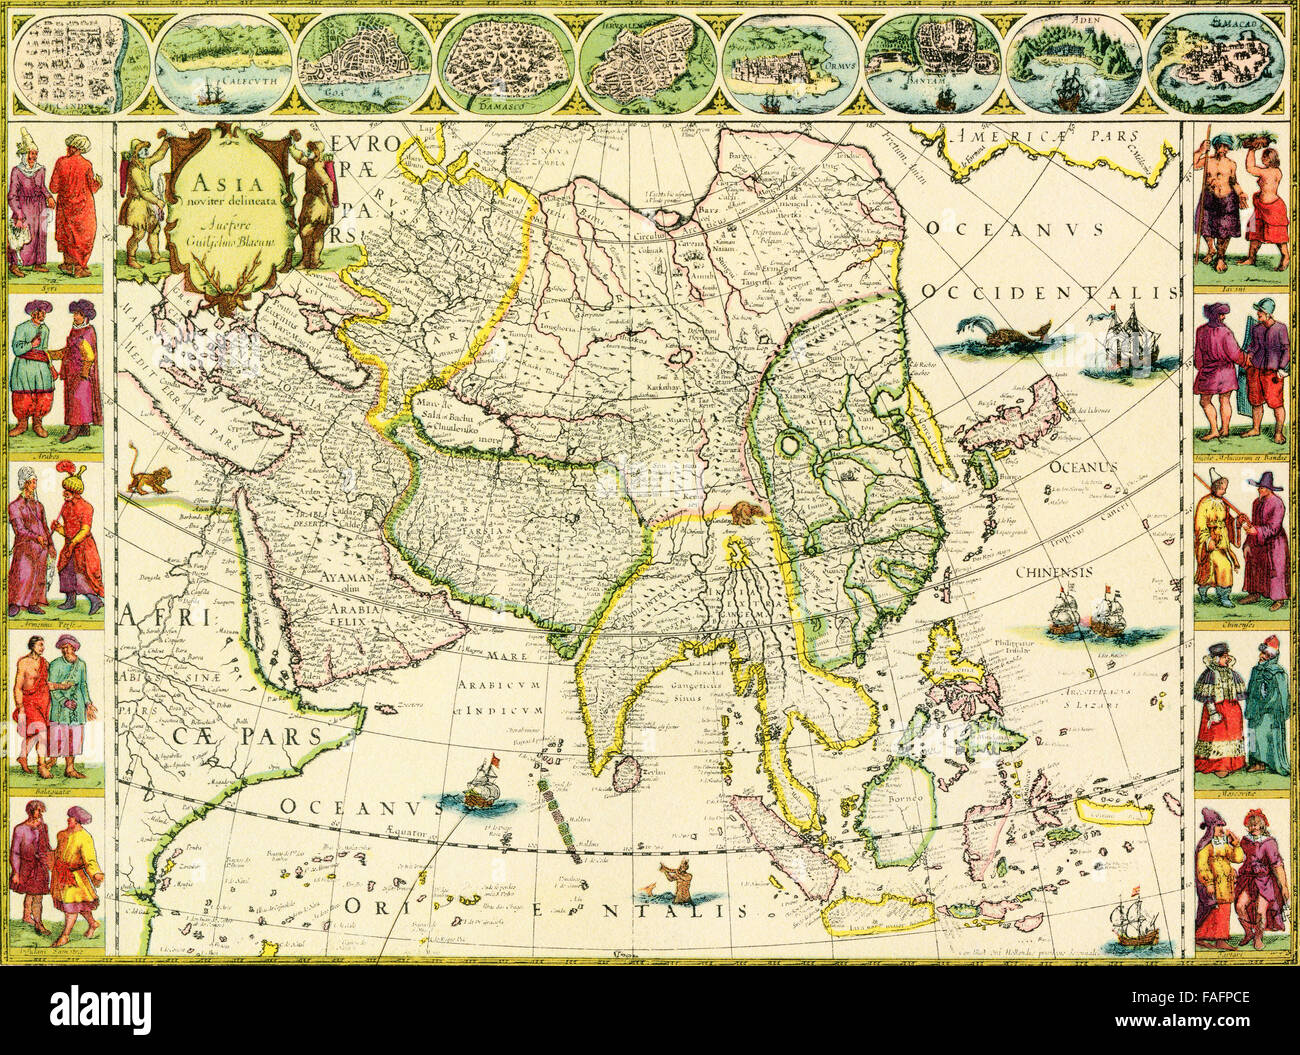 Map of Asia by J. Blaeu, 1632. - Stock Image